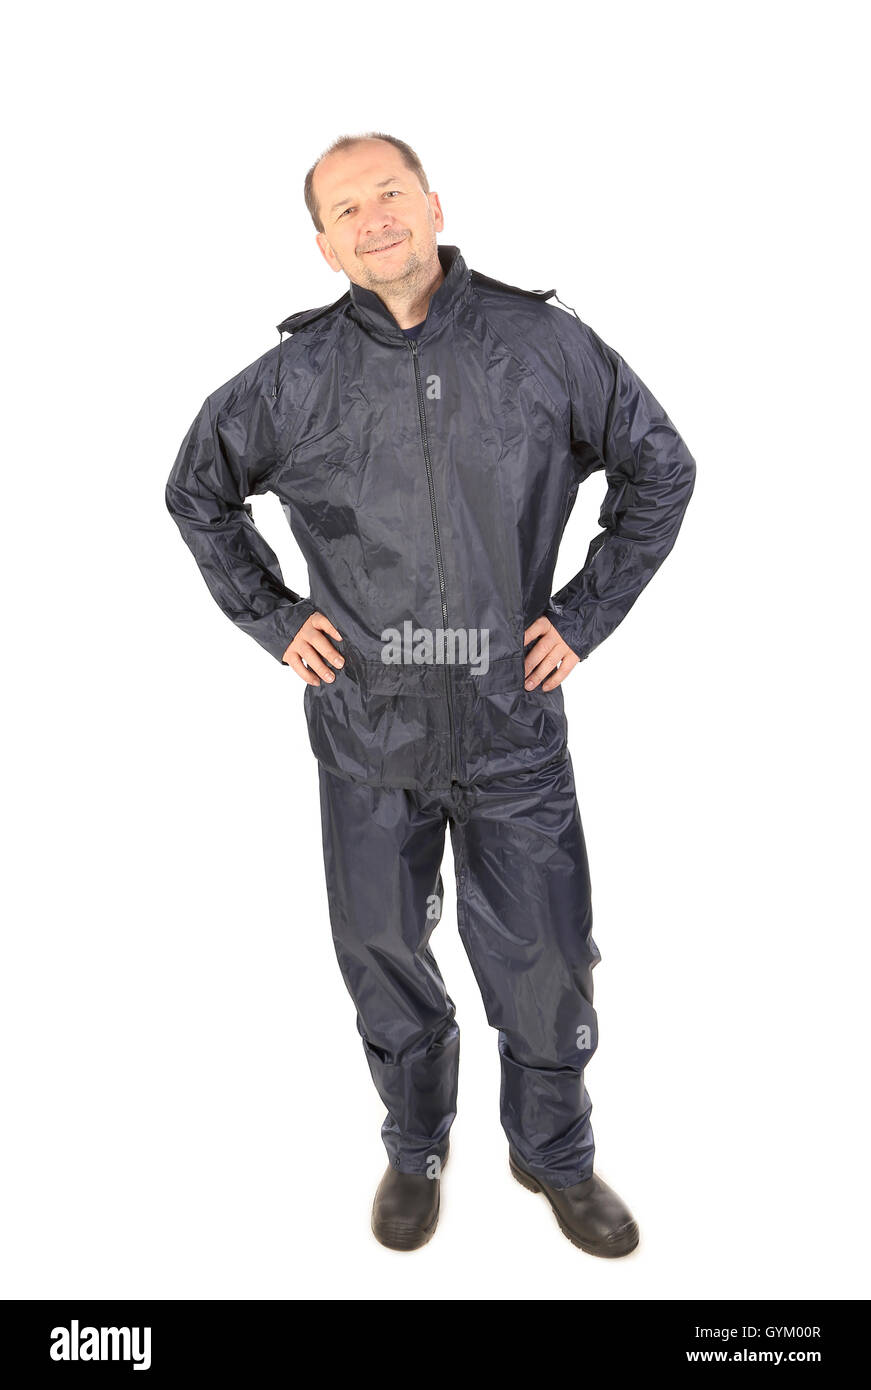 Waterproof Clothes Stock Photos & Waterproof Clothes Stock ...